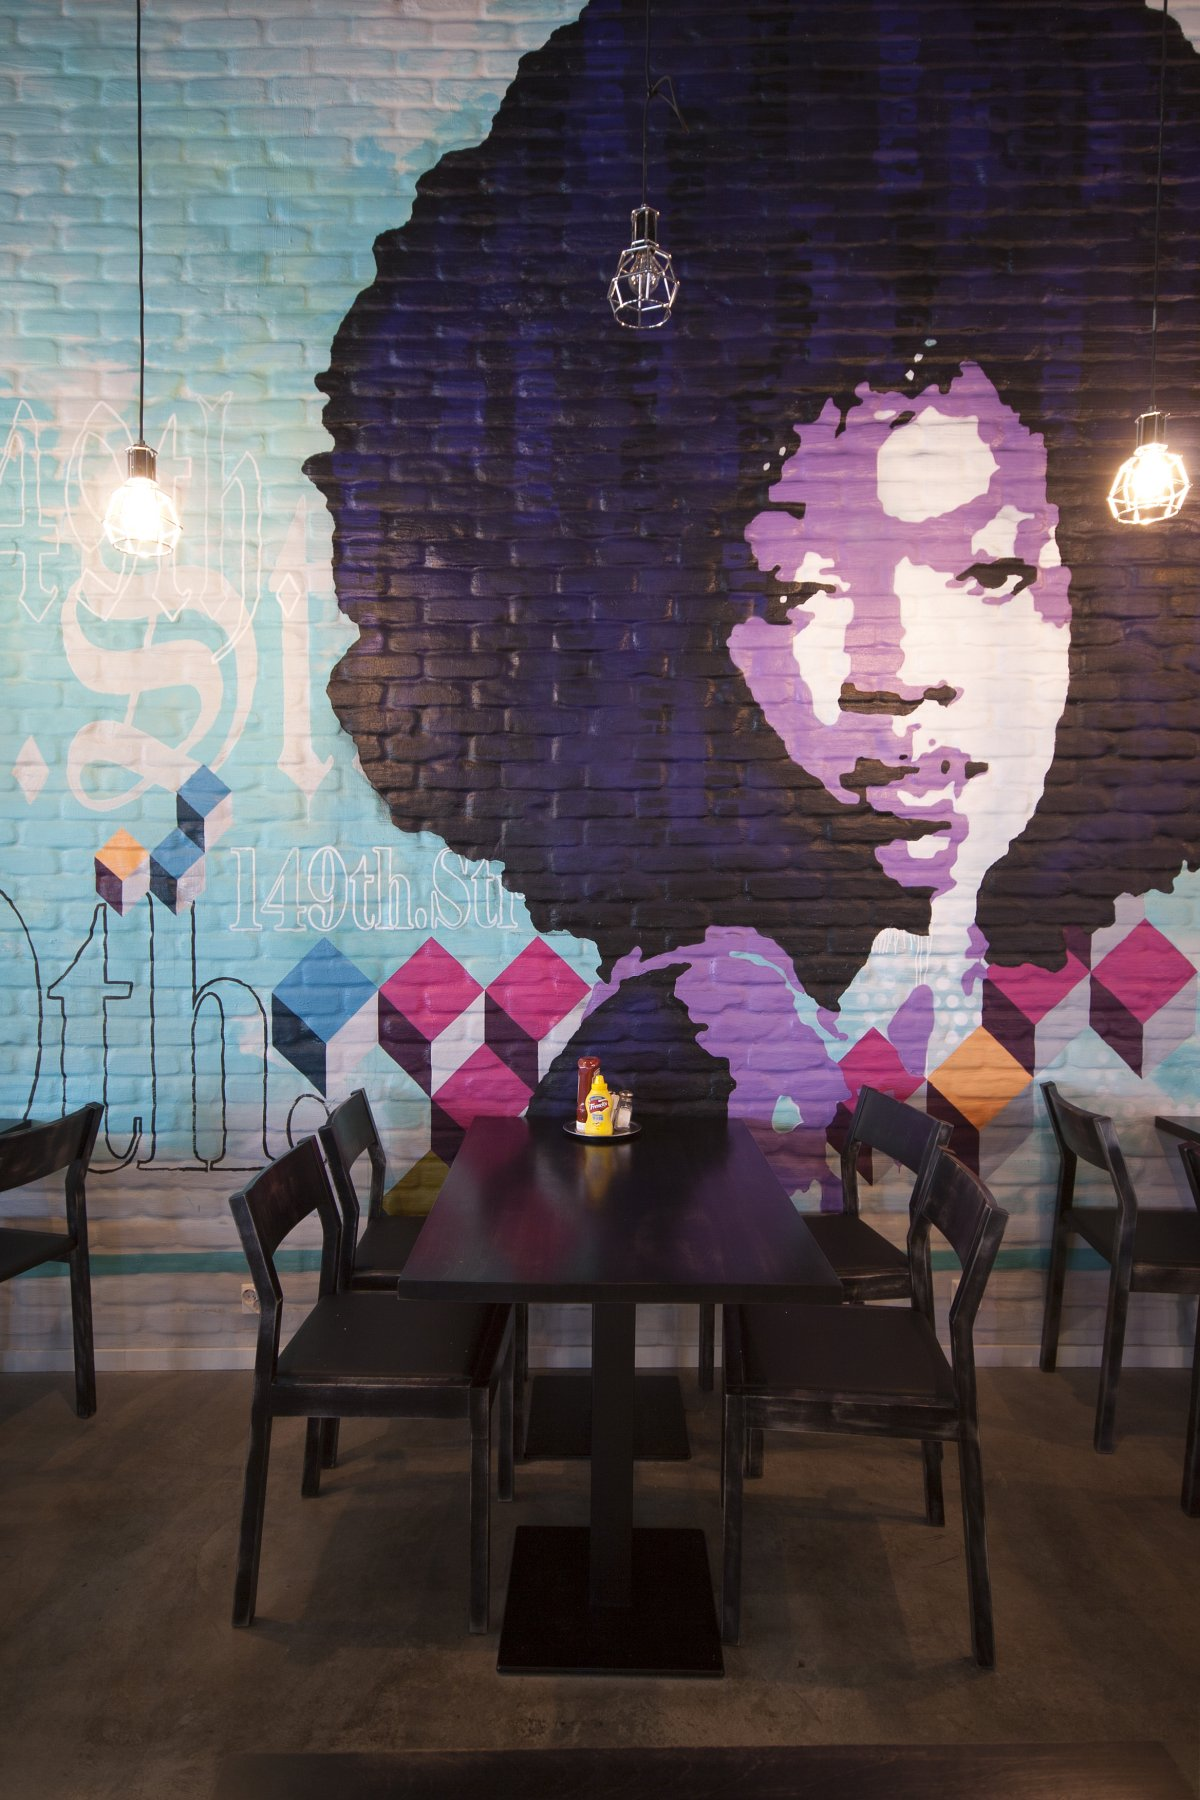 Chico's-Restaurant-by-Amerikka-Design-Office-and-a-nice-Erika-Badu-painting-in-the-back-wallpaper-wp4405727